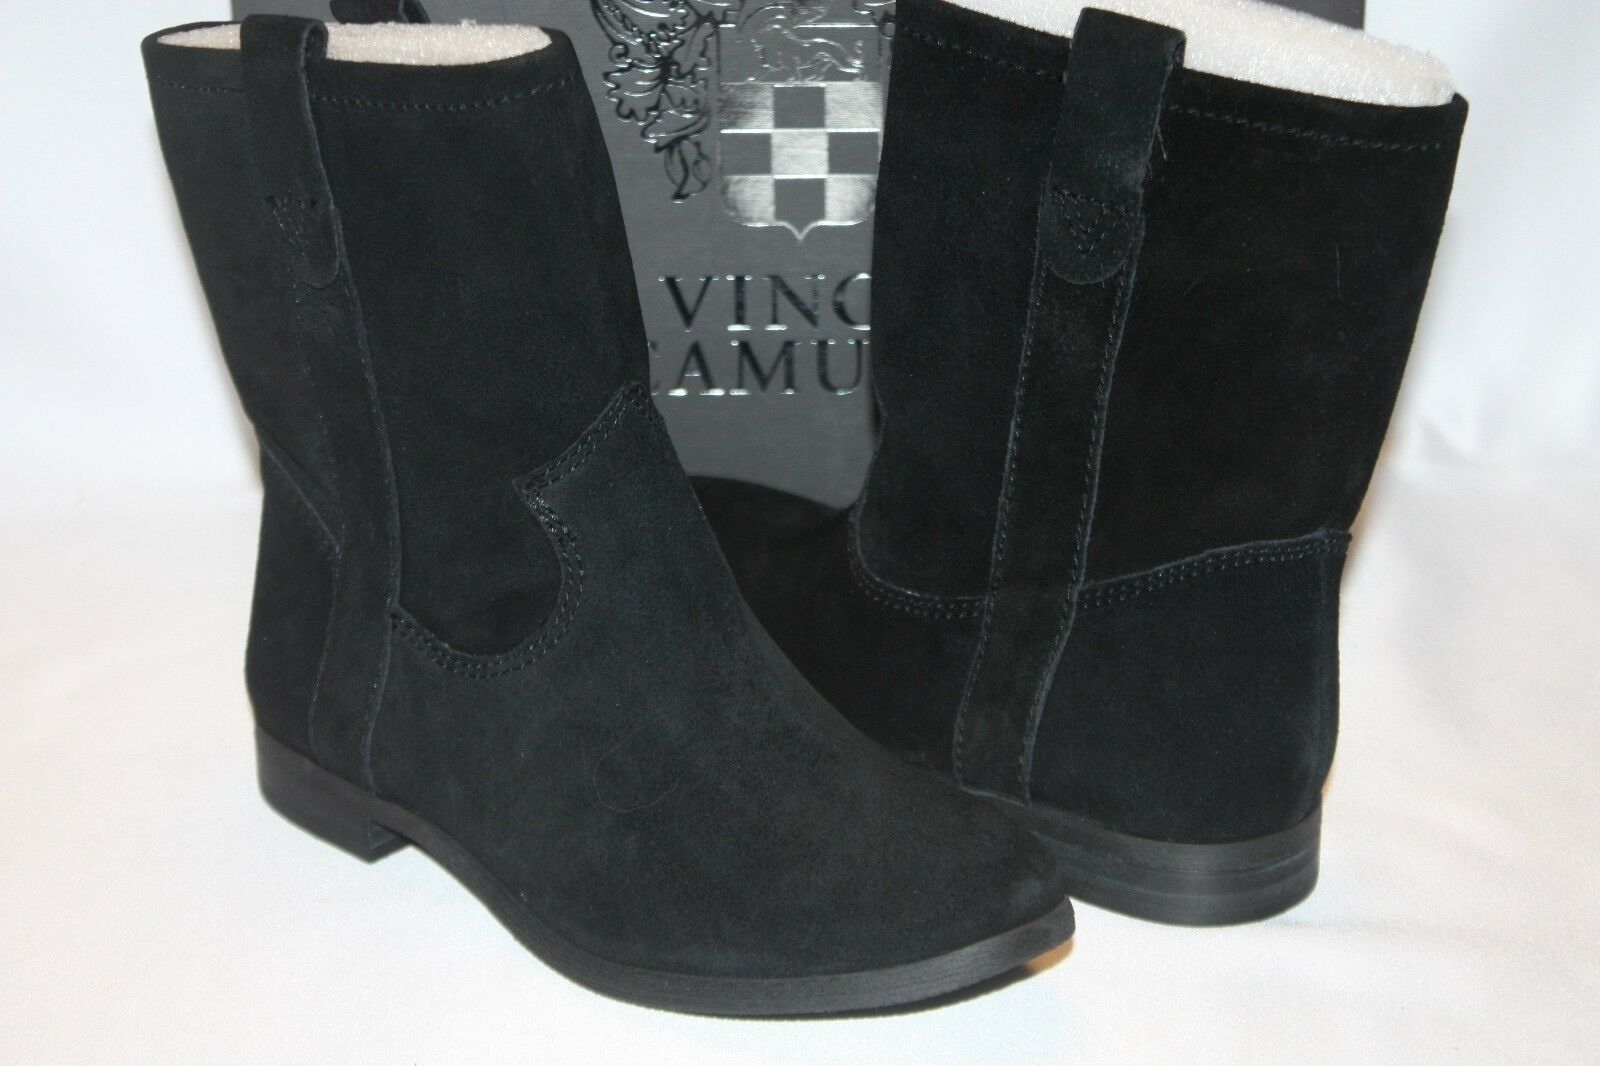 NEW NIB VINCE CAMUTO Black Suede Leather FANTI Pull On Slouch Ankle Boots Sz 6